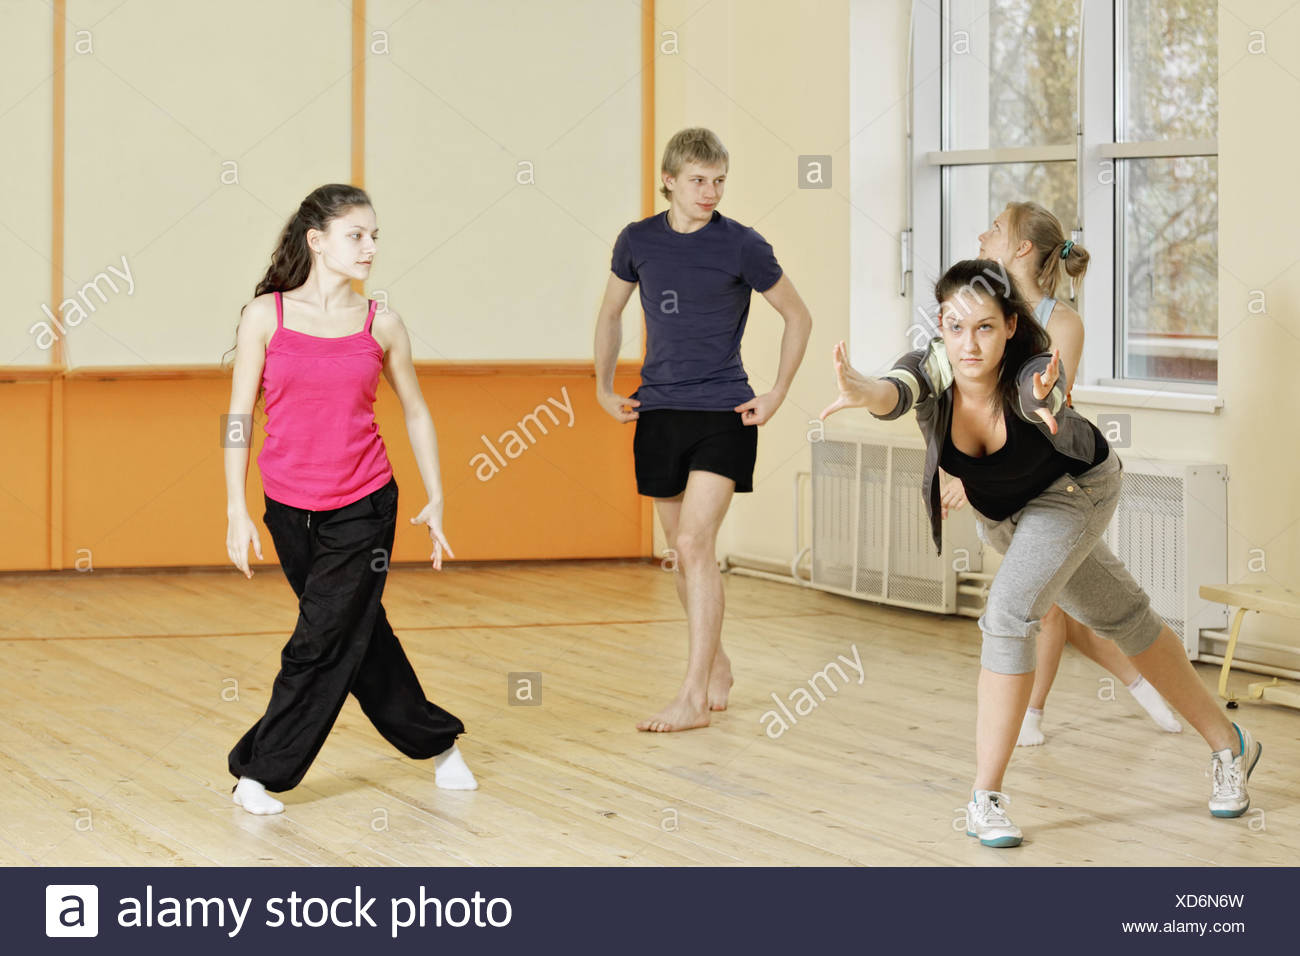 Trainer demonstrates exercise - Stock Image